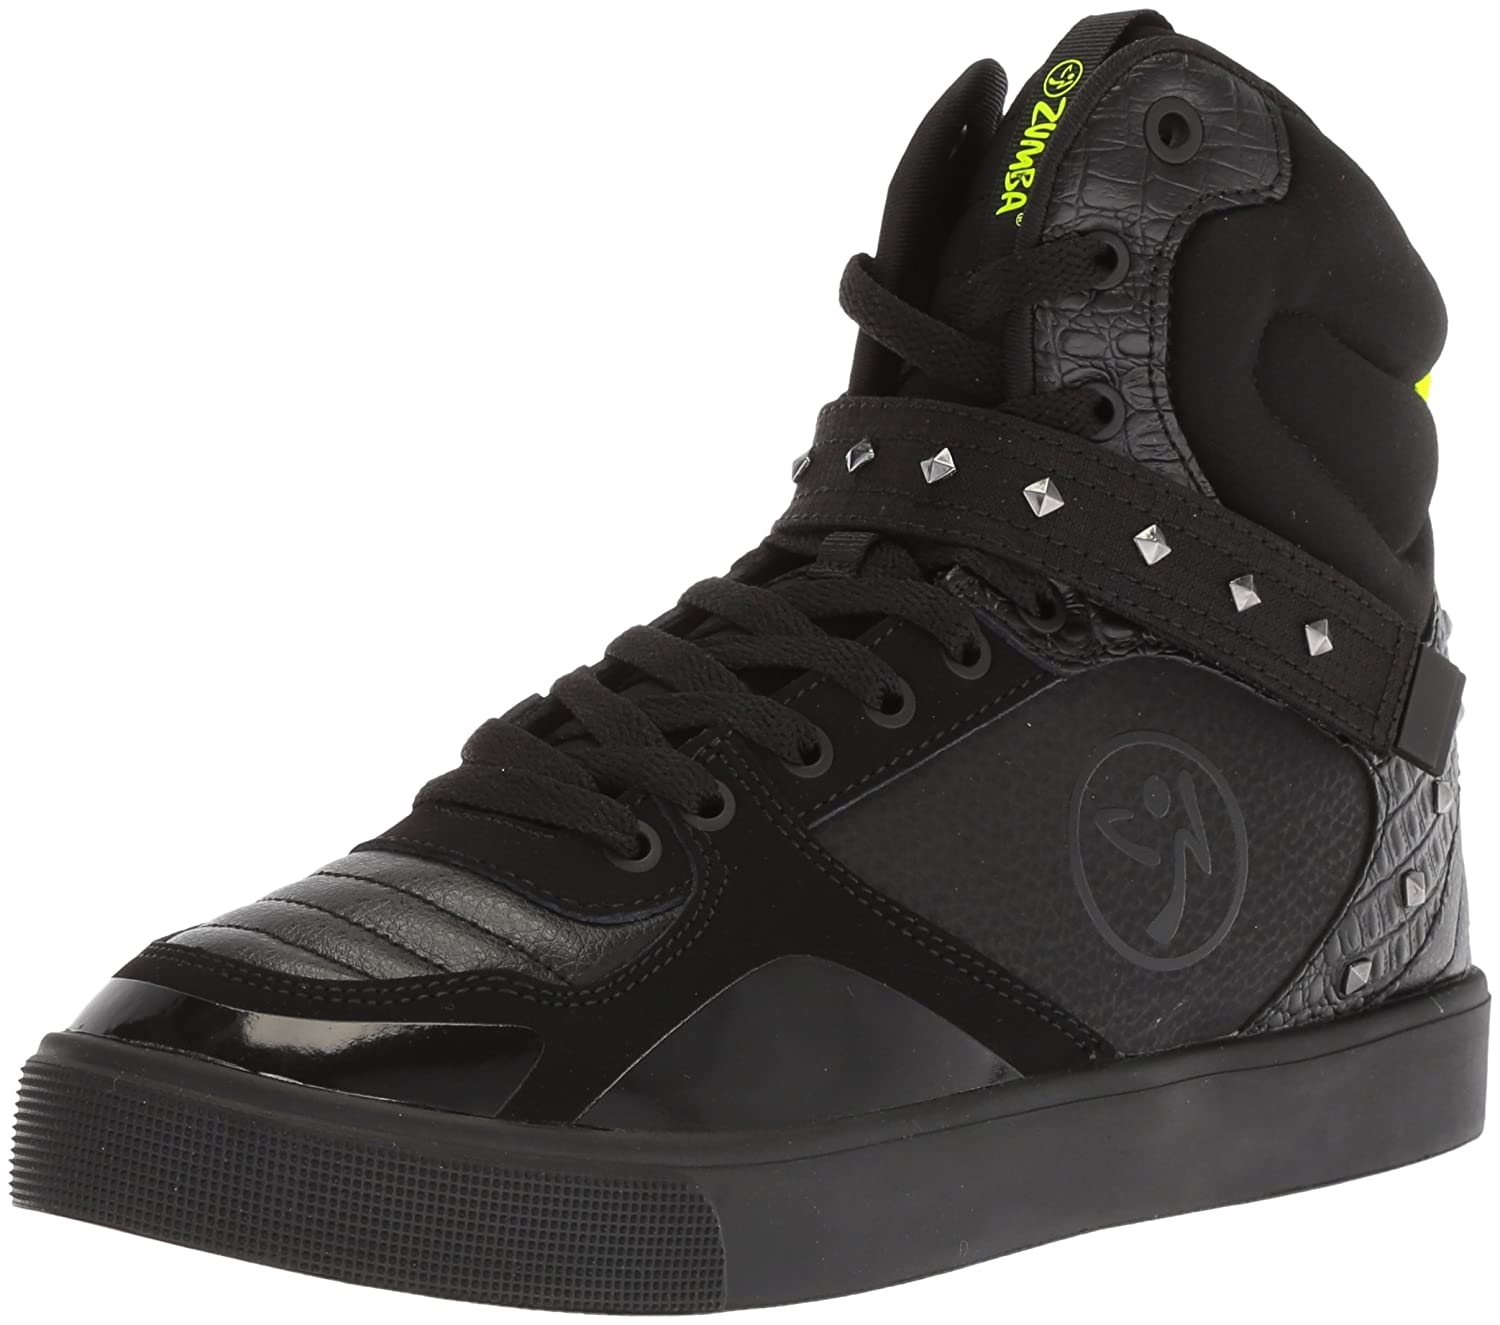 Zumba Women's Street Fashion High Top Dance Workout Sneakers B078WFJ7BN 11 B(M) US|Black Studded